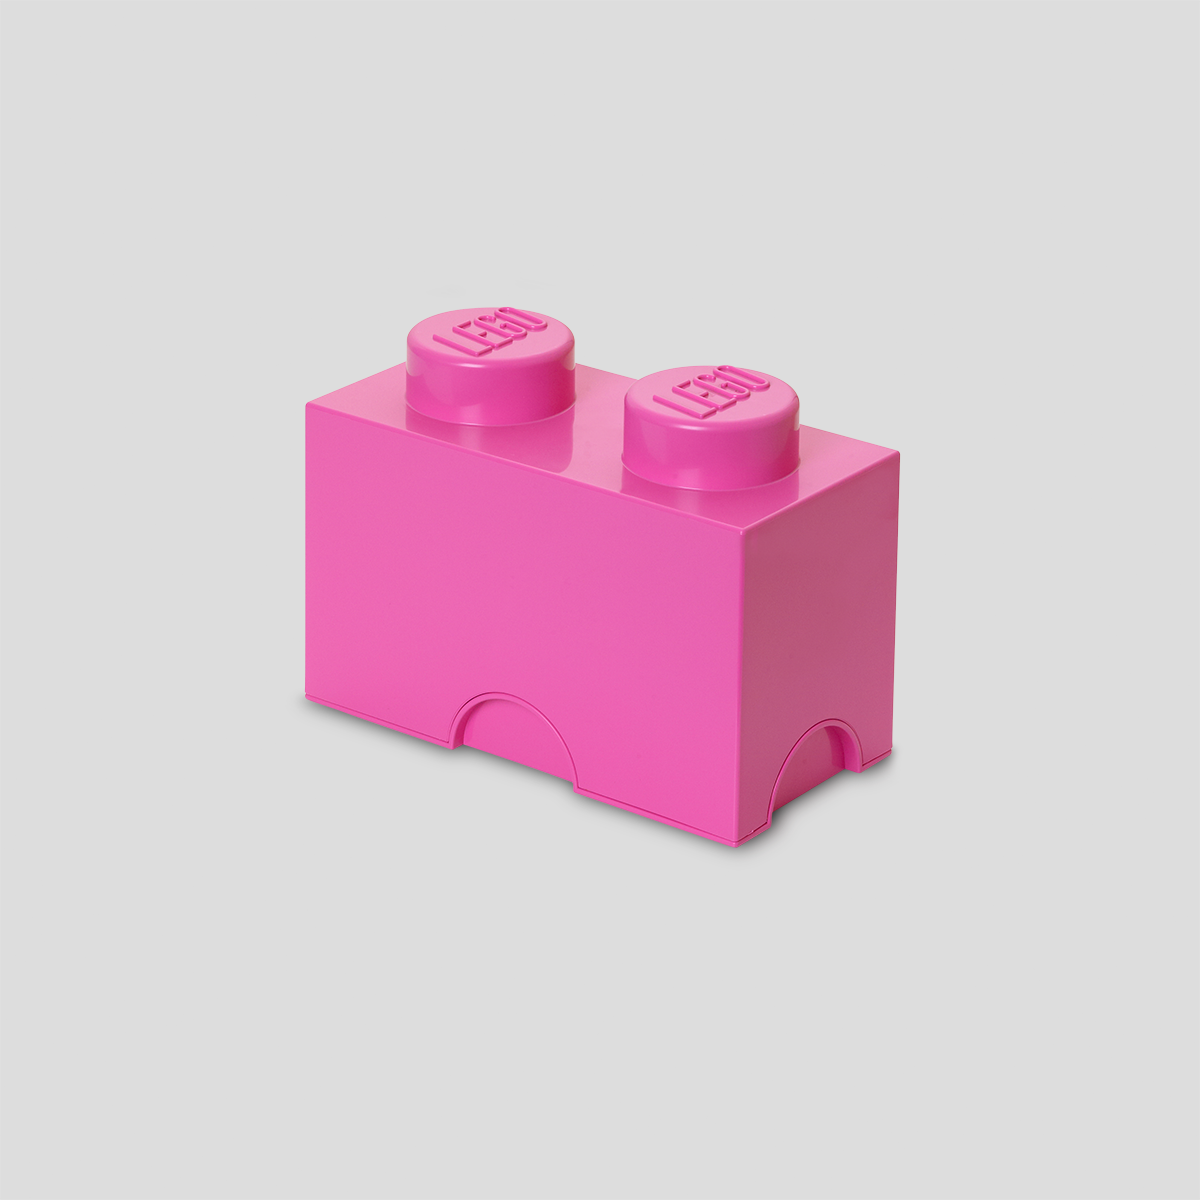 LEGO # 4002 STORAGE BRICK 2 KNOB - BRIGHT PURPLE